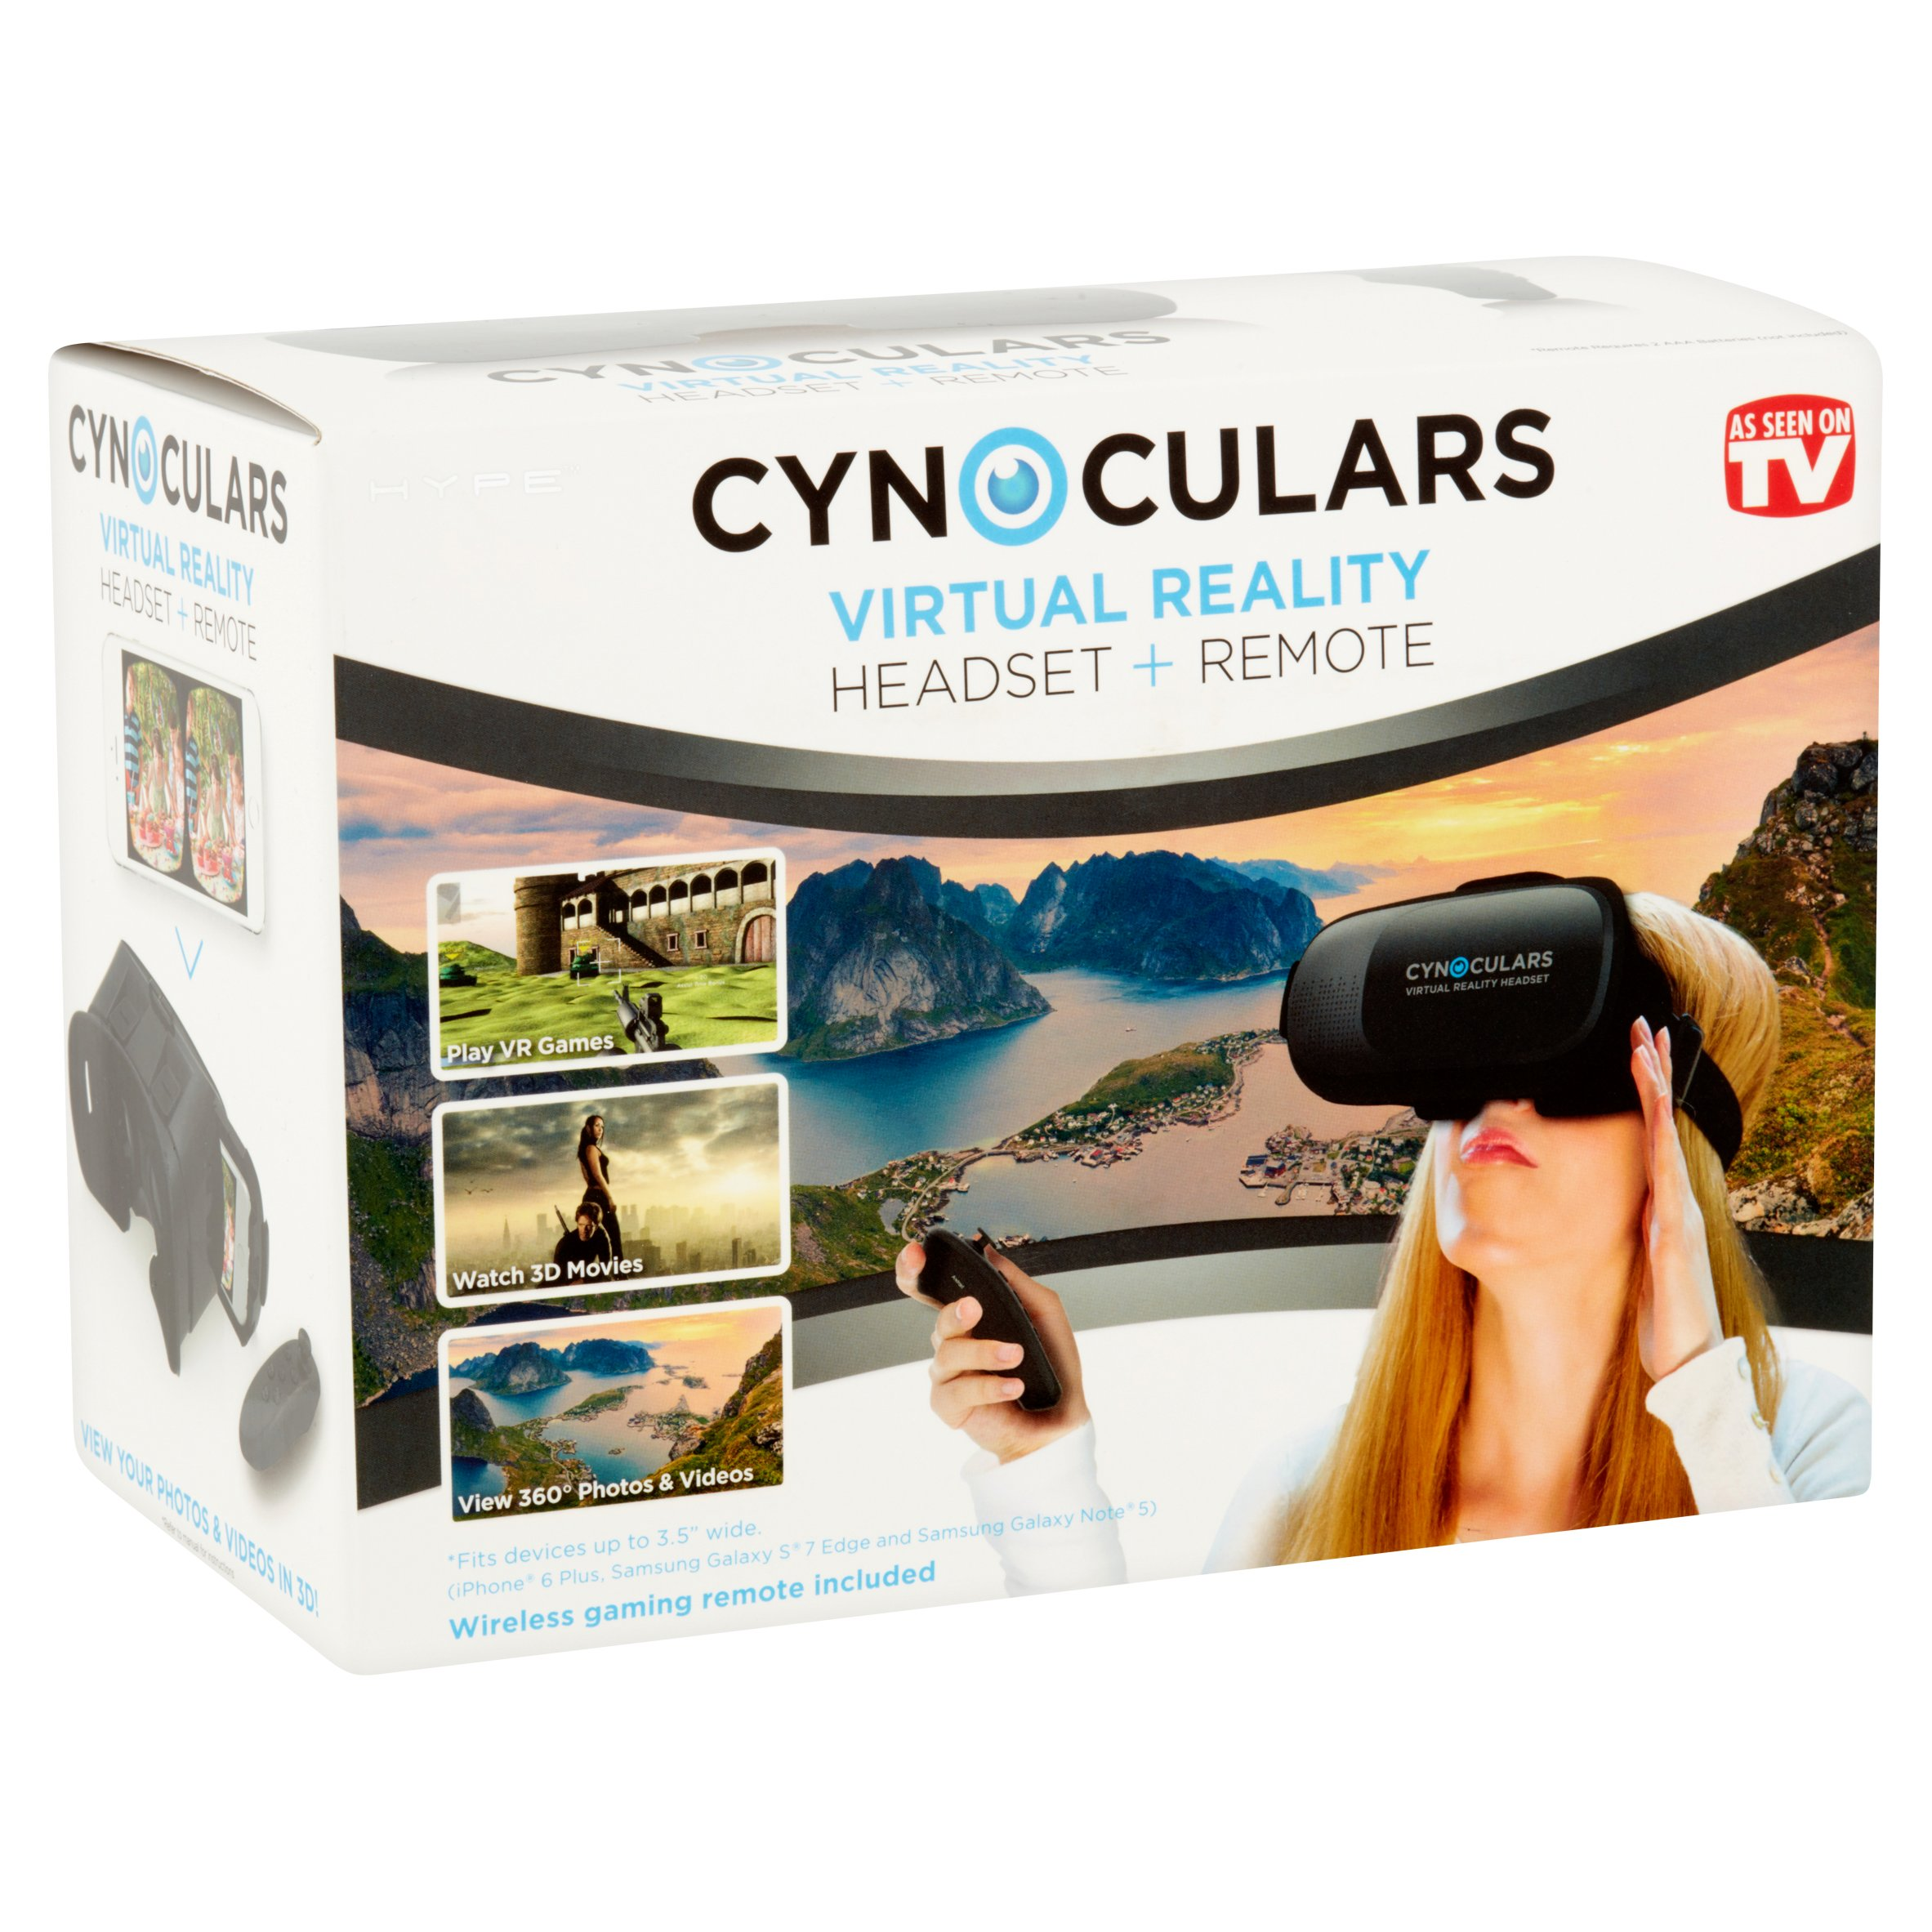 f4dfe2d9bf31 Cynoculars Mobile VR Headset and Remote - Walmart.com